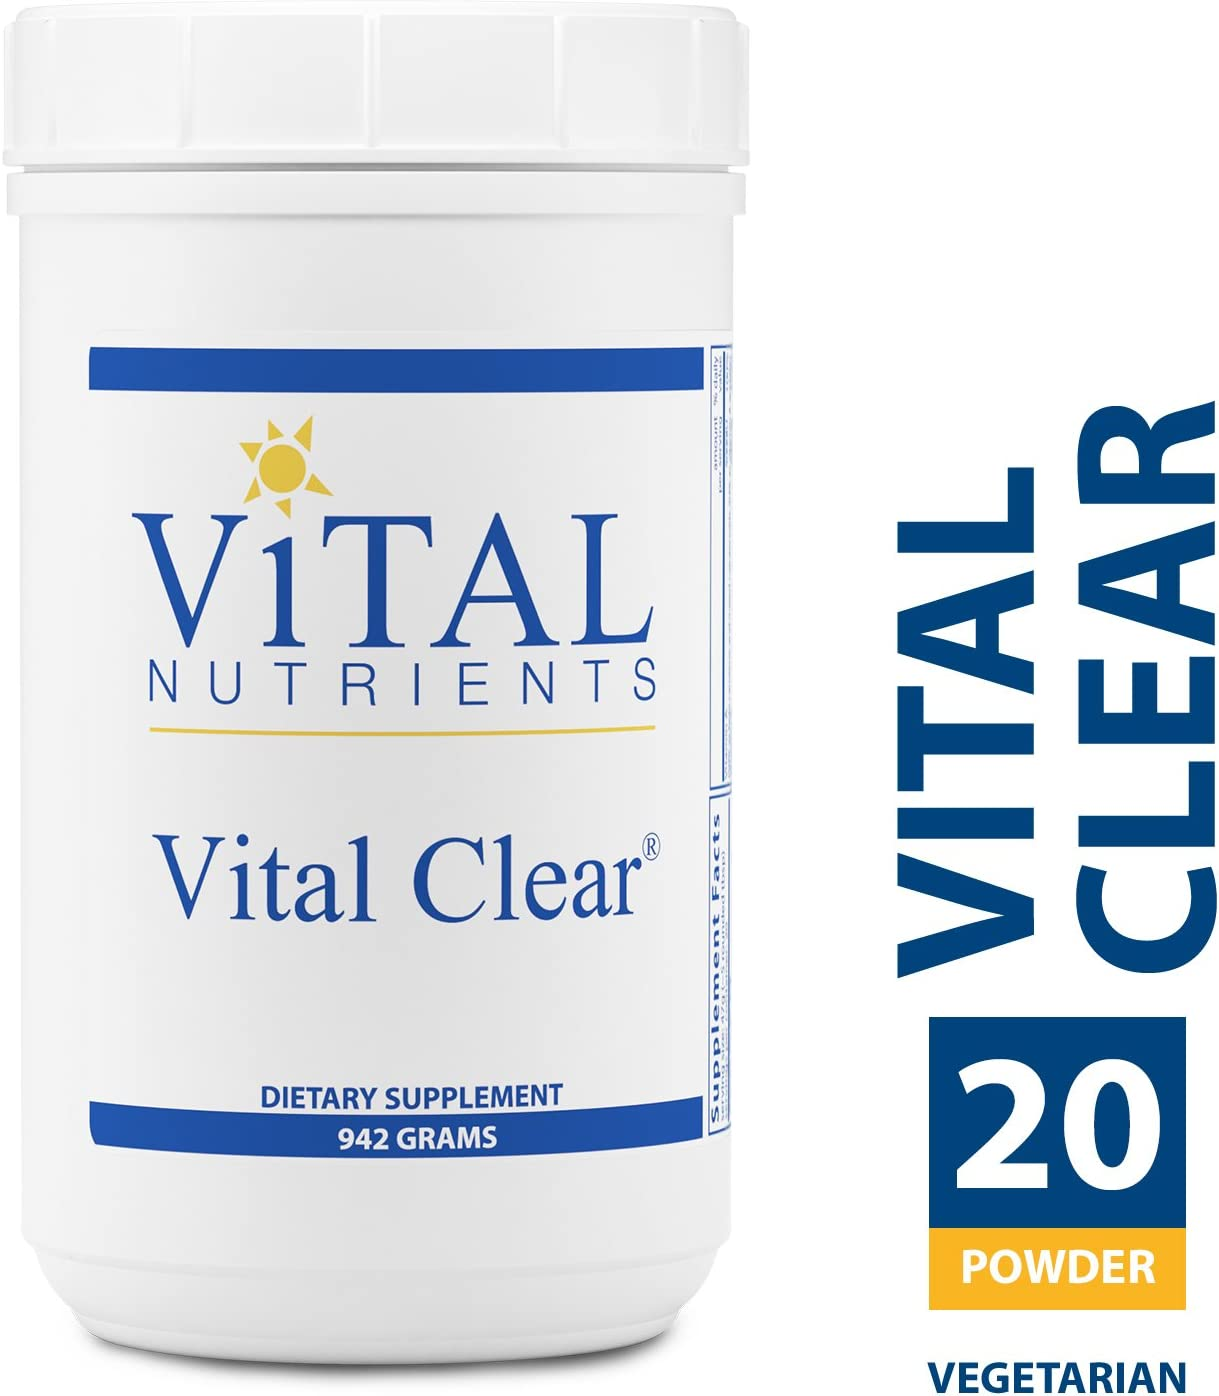 Vital Nutrients – Vital Clear – Nutritional and Herbal Support for a Healthy Inflammatory Response, Maintaining Healthy Blood Sugar Levels, and Promoting Detoxification – Vegetarian – 942 Grams